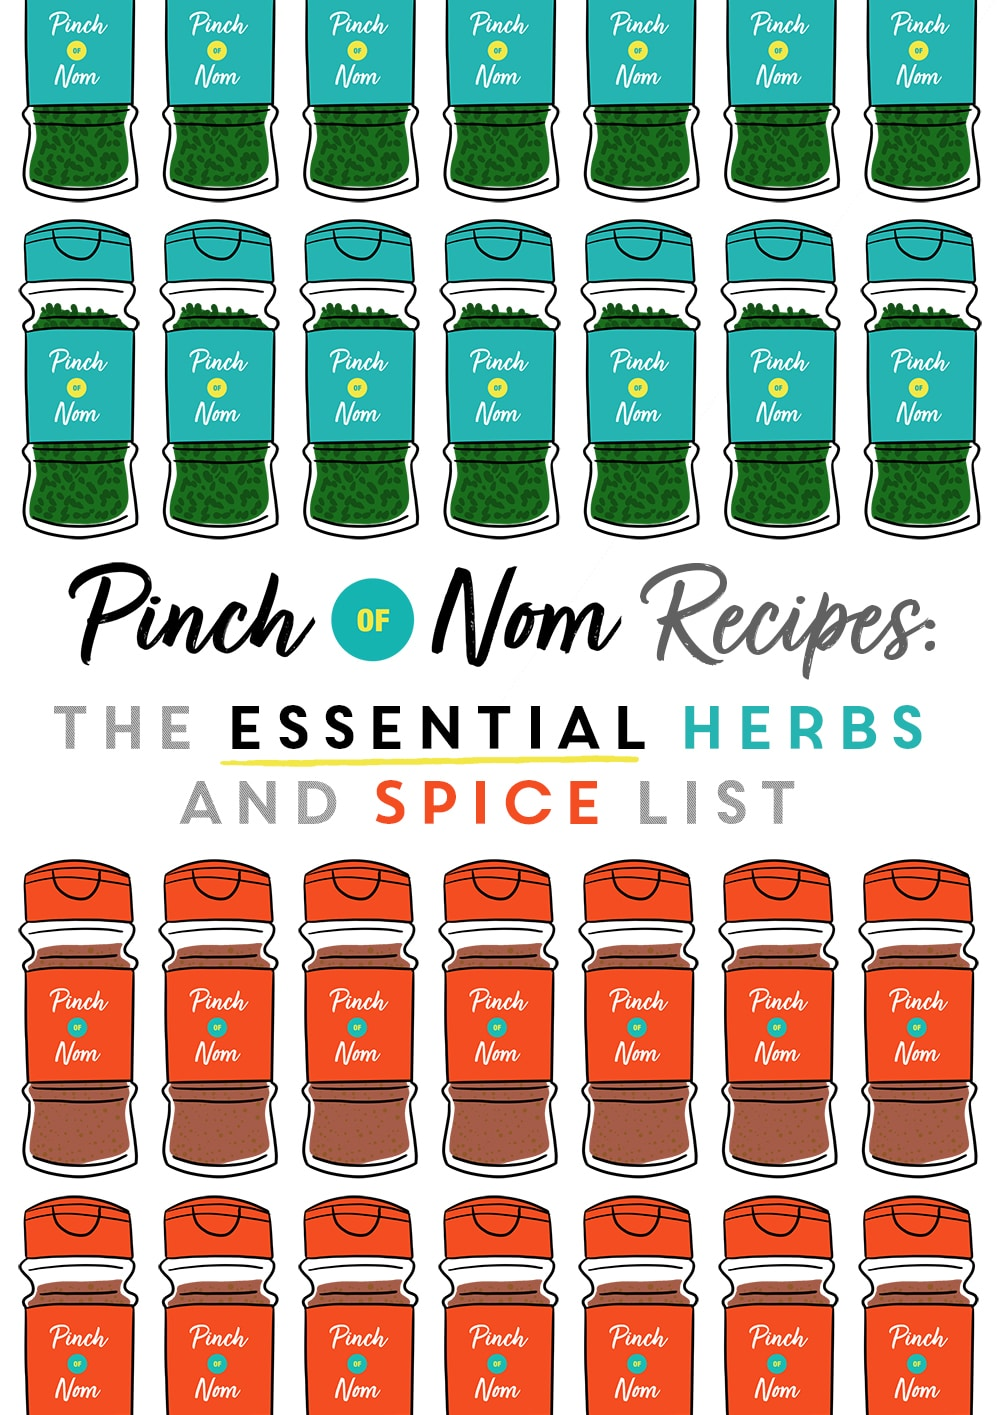 The Essential Herbs and Spice List - Pinch of Nom Slimming Recipes